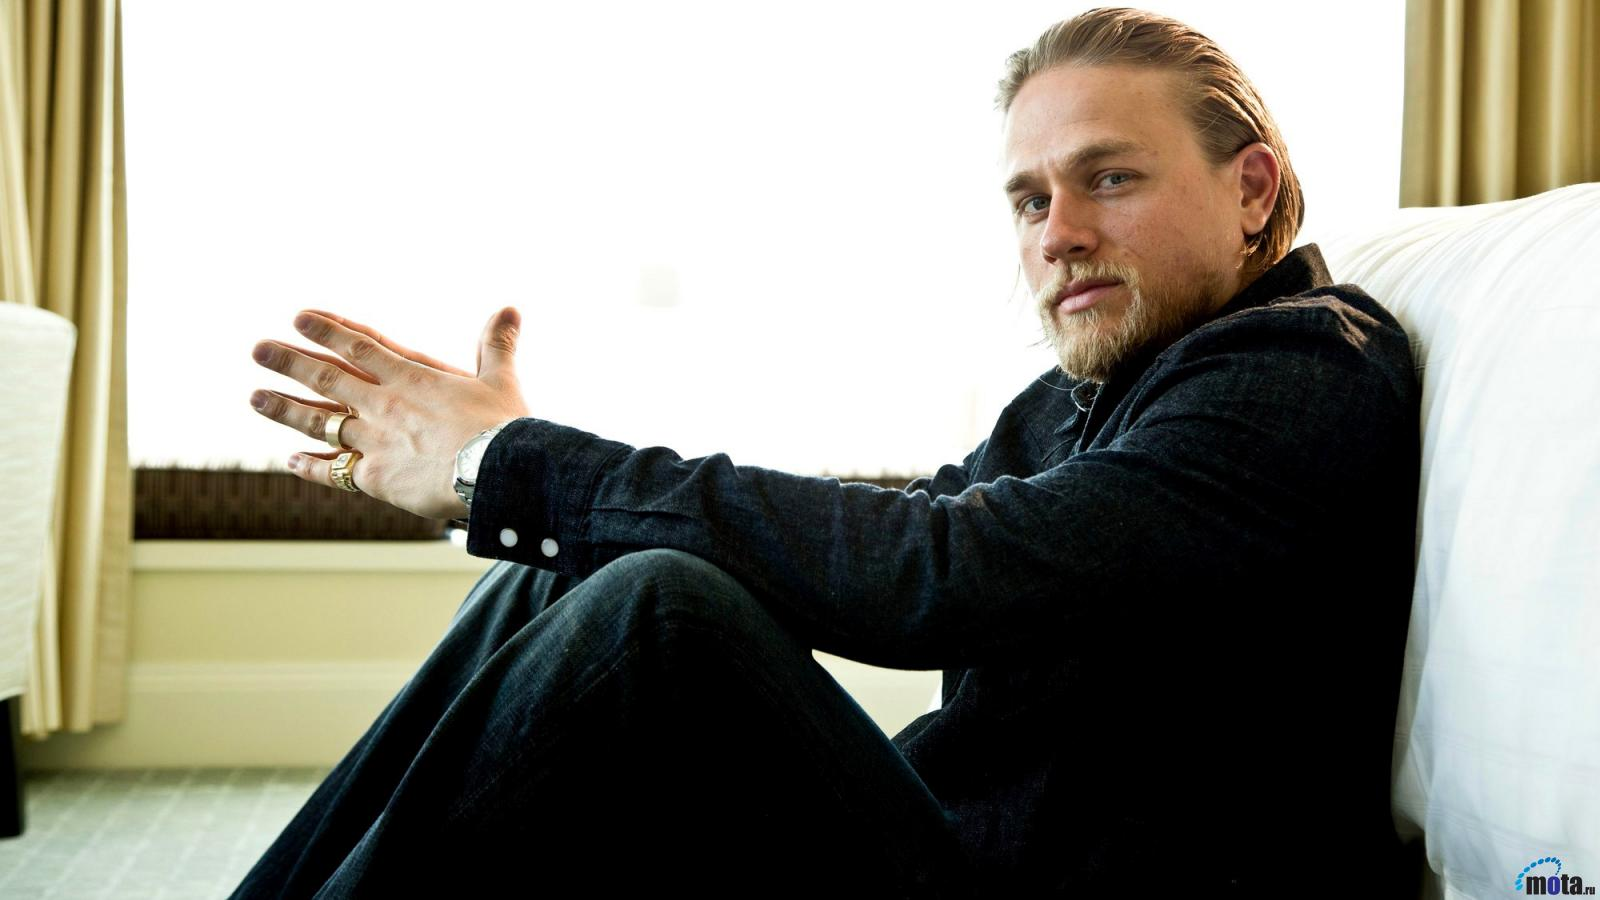 Download Wallpaper Actor Charlie Hunnam 1600 x 900 1600x900